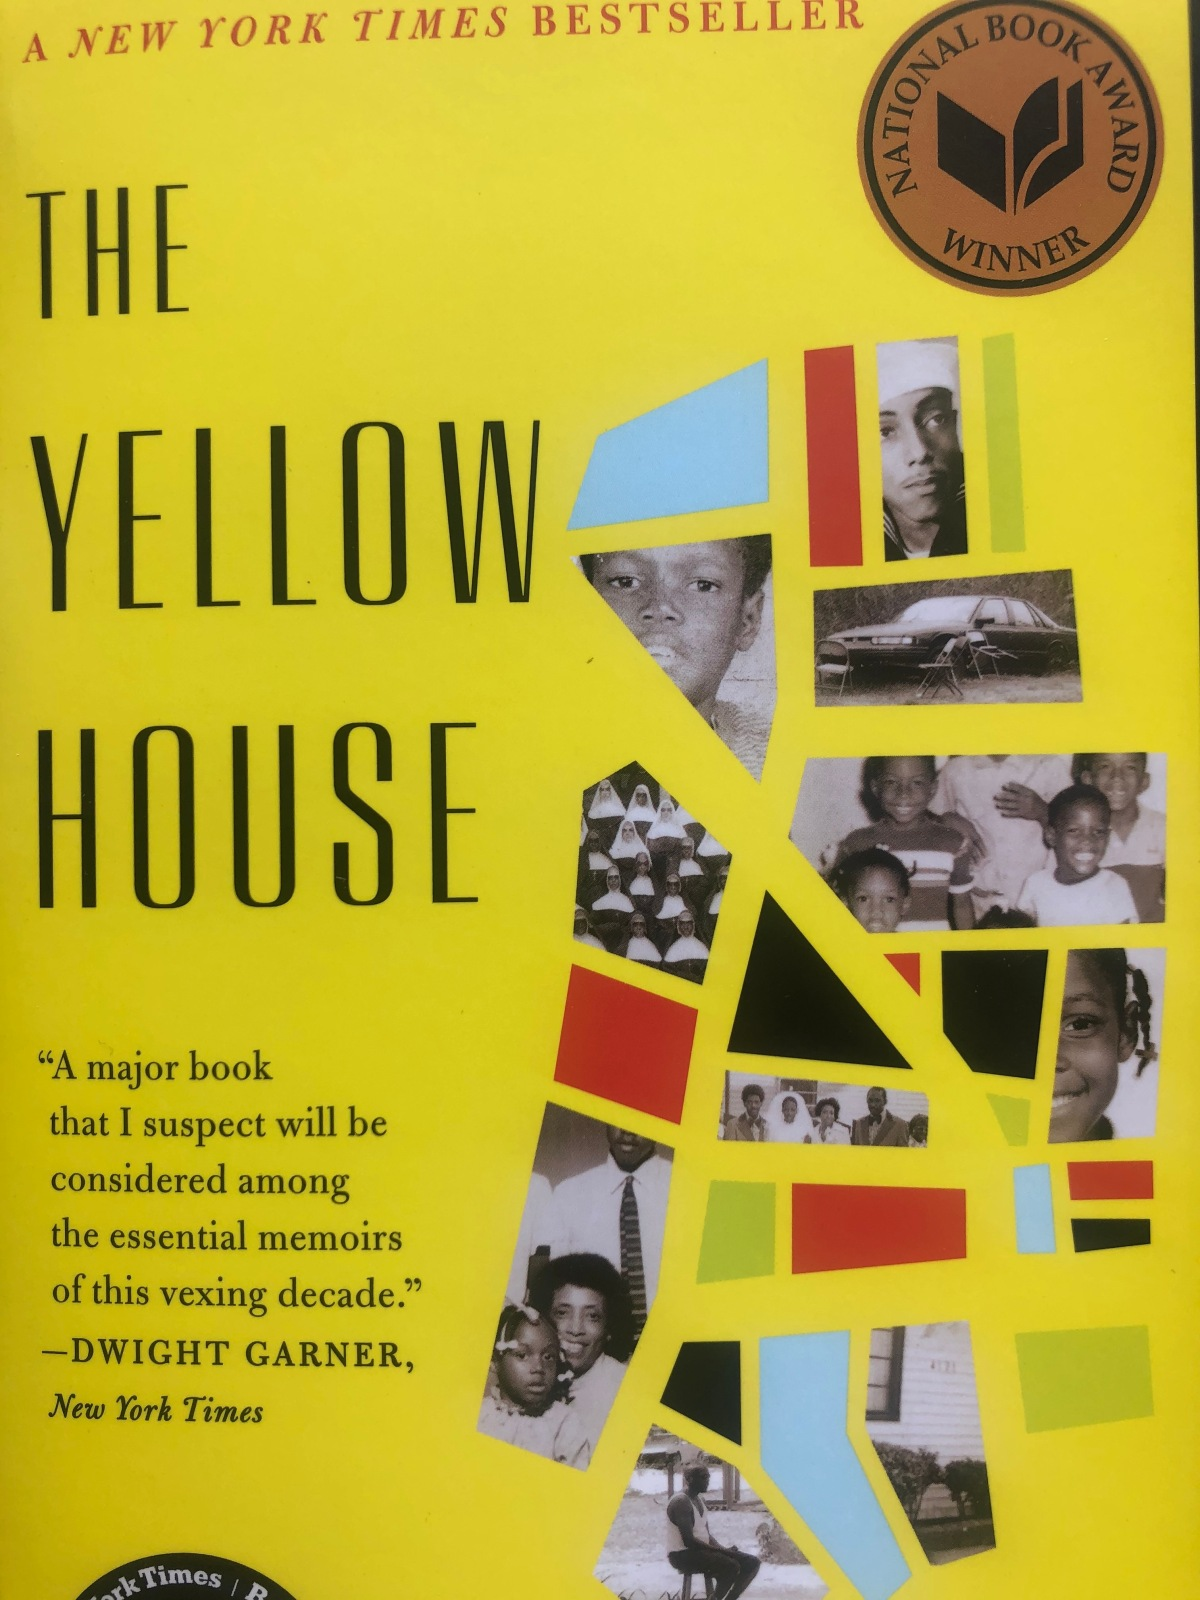 The Nitty Gritty: The Yellow House